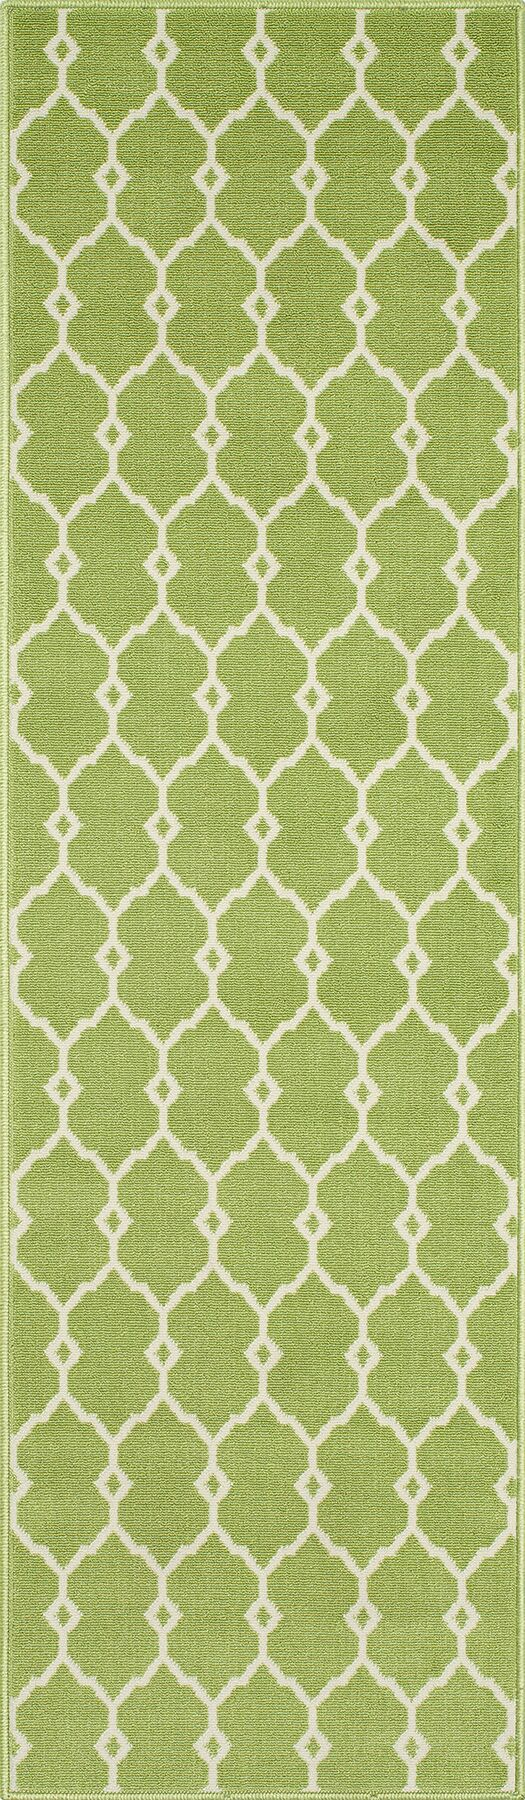 Halliday Traditional Green Indoor/Outdoor Area Rug Rug Size: Rectangle 6'7